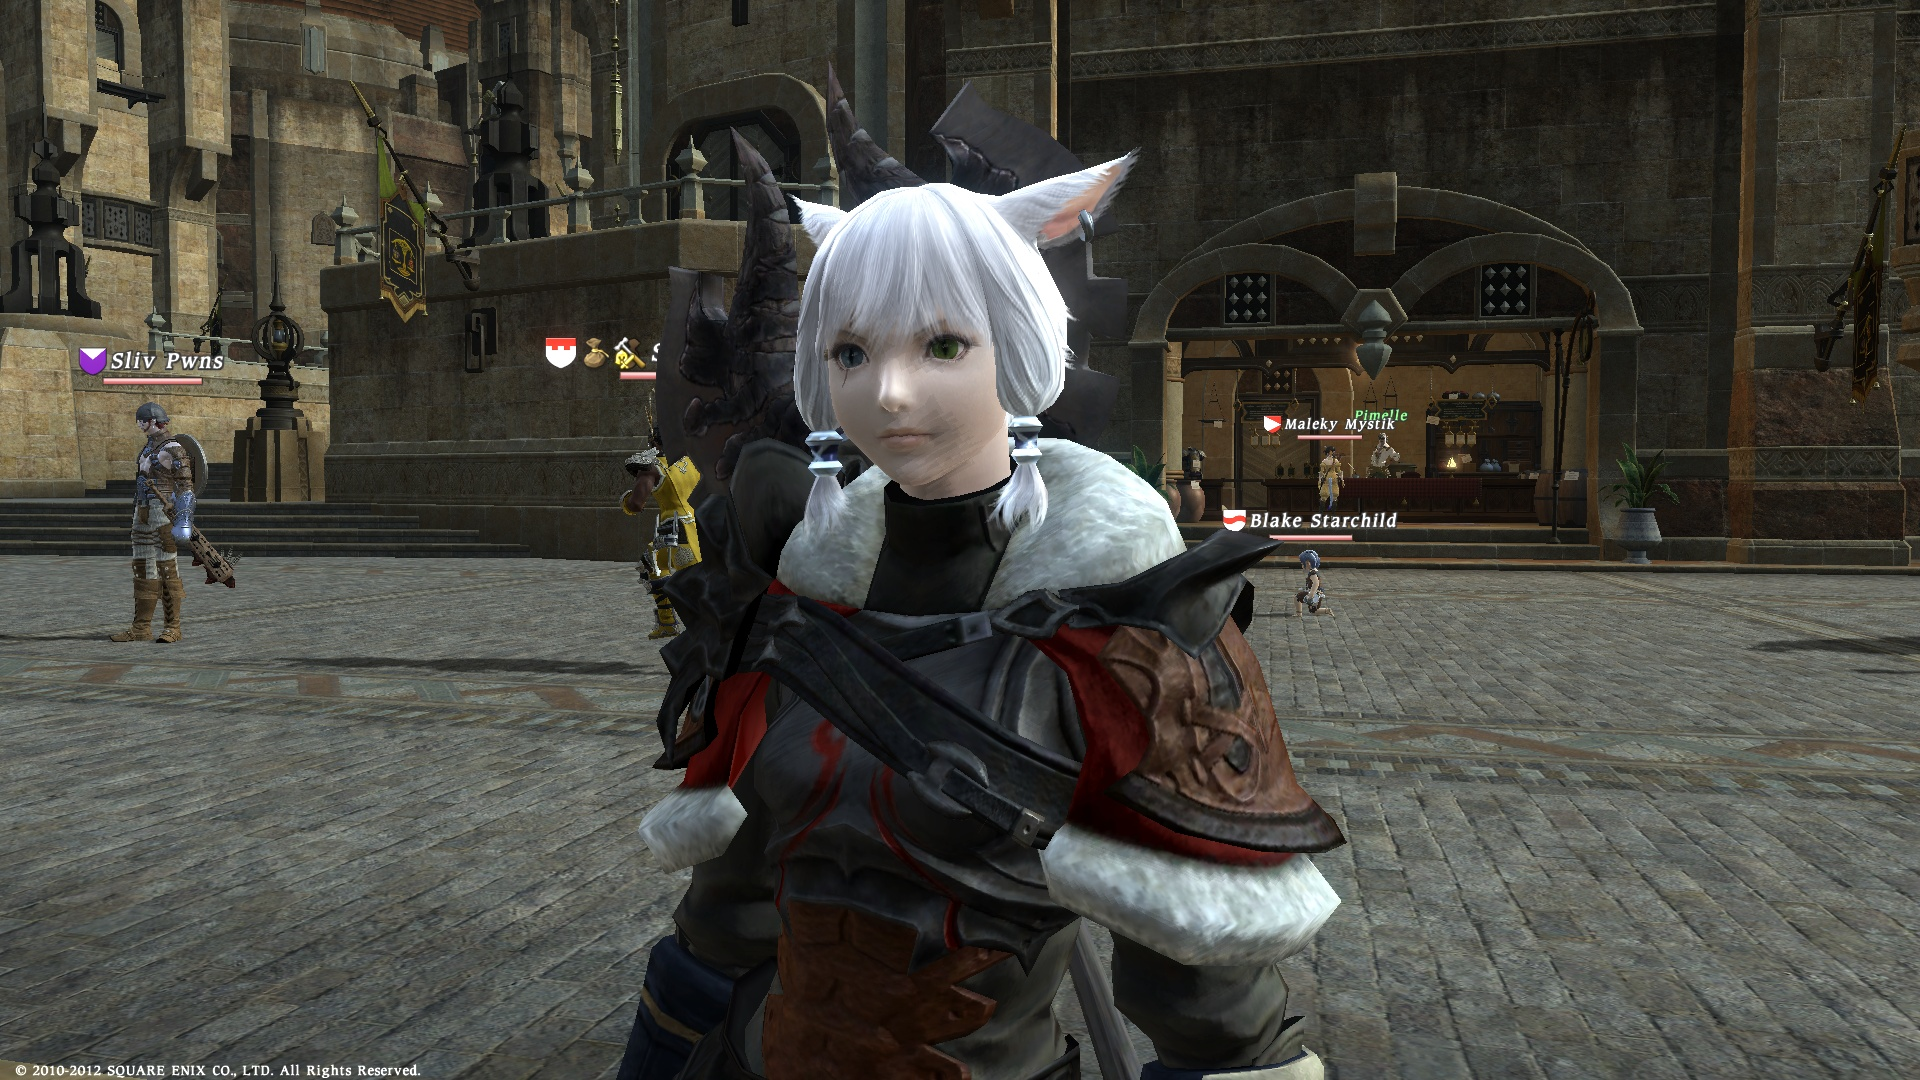 kamugi ffxiv drive used quality lowest crazy have shadows this fixed question issue turning graphics